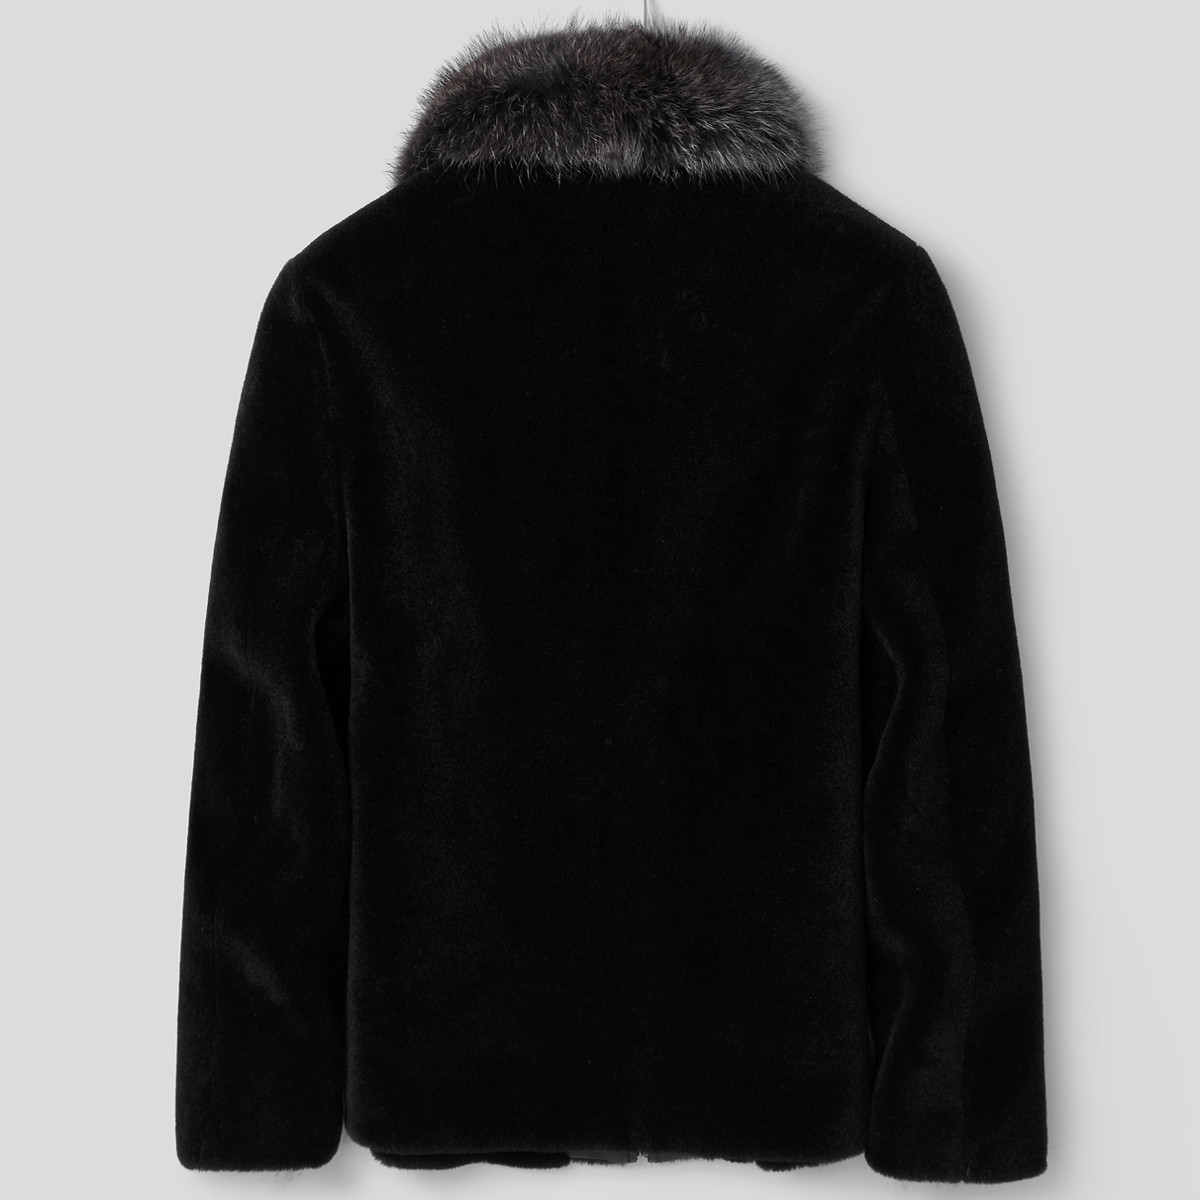 100%Wool Coat Winter Jacket Men Real Sheep Shearling Fur Coat Raccoon Fur Collar Short Jacket LSY088305 MY1385